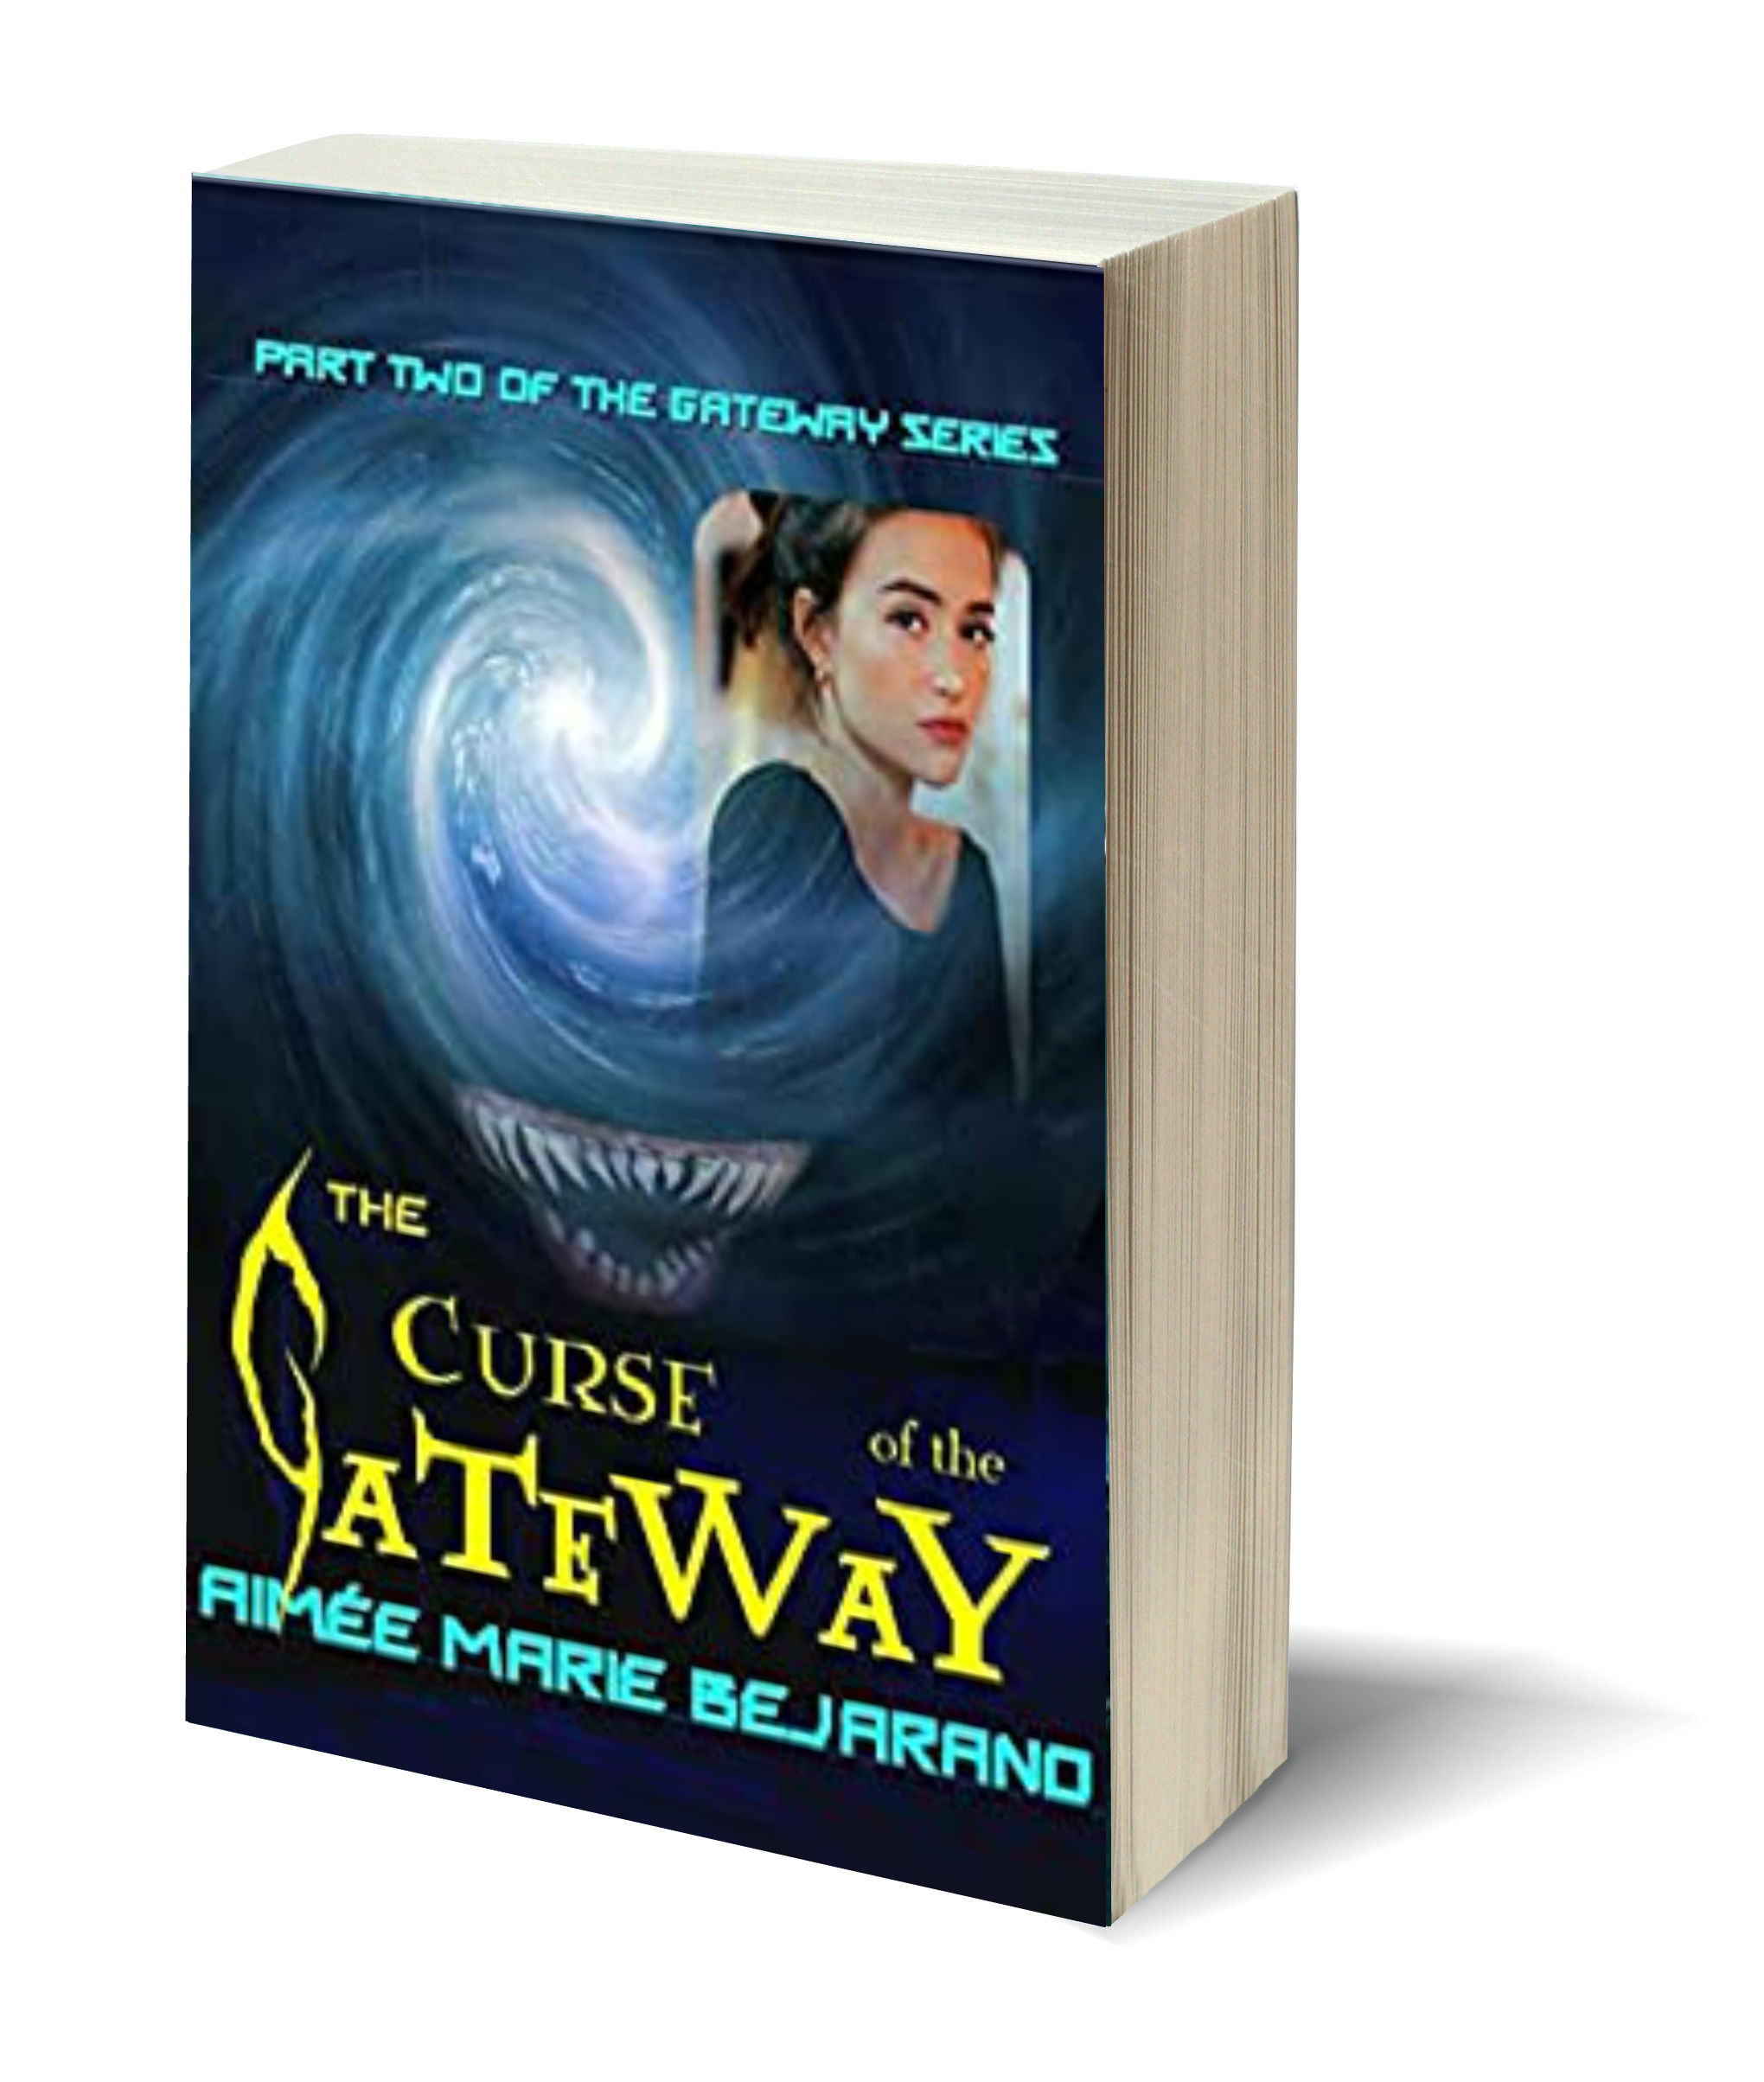 The Curse of the Gateway 3D-Book-Template